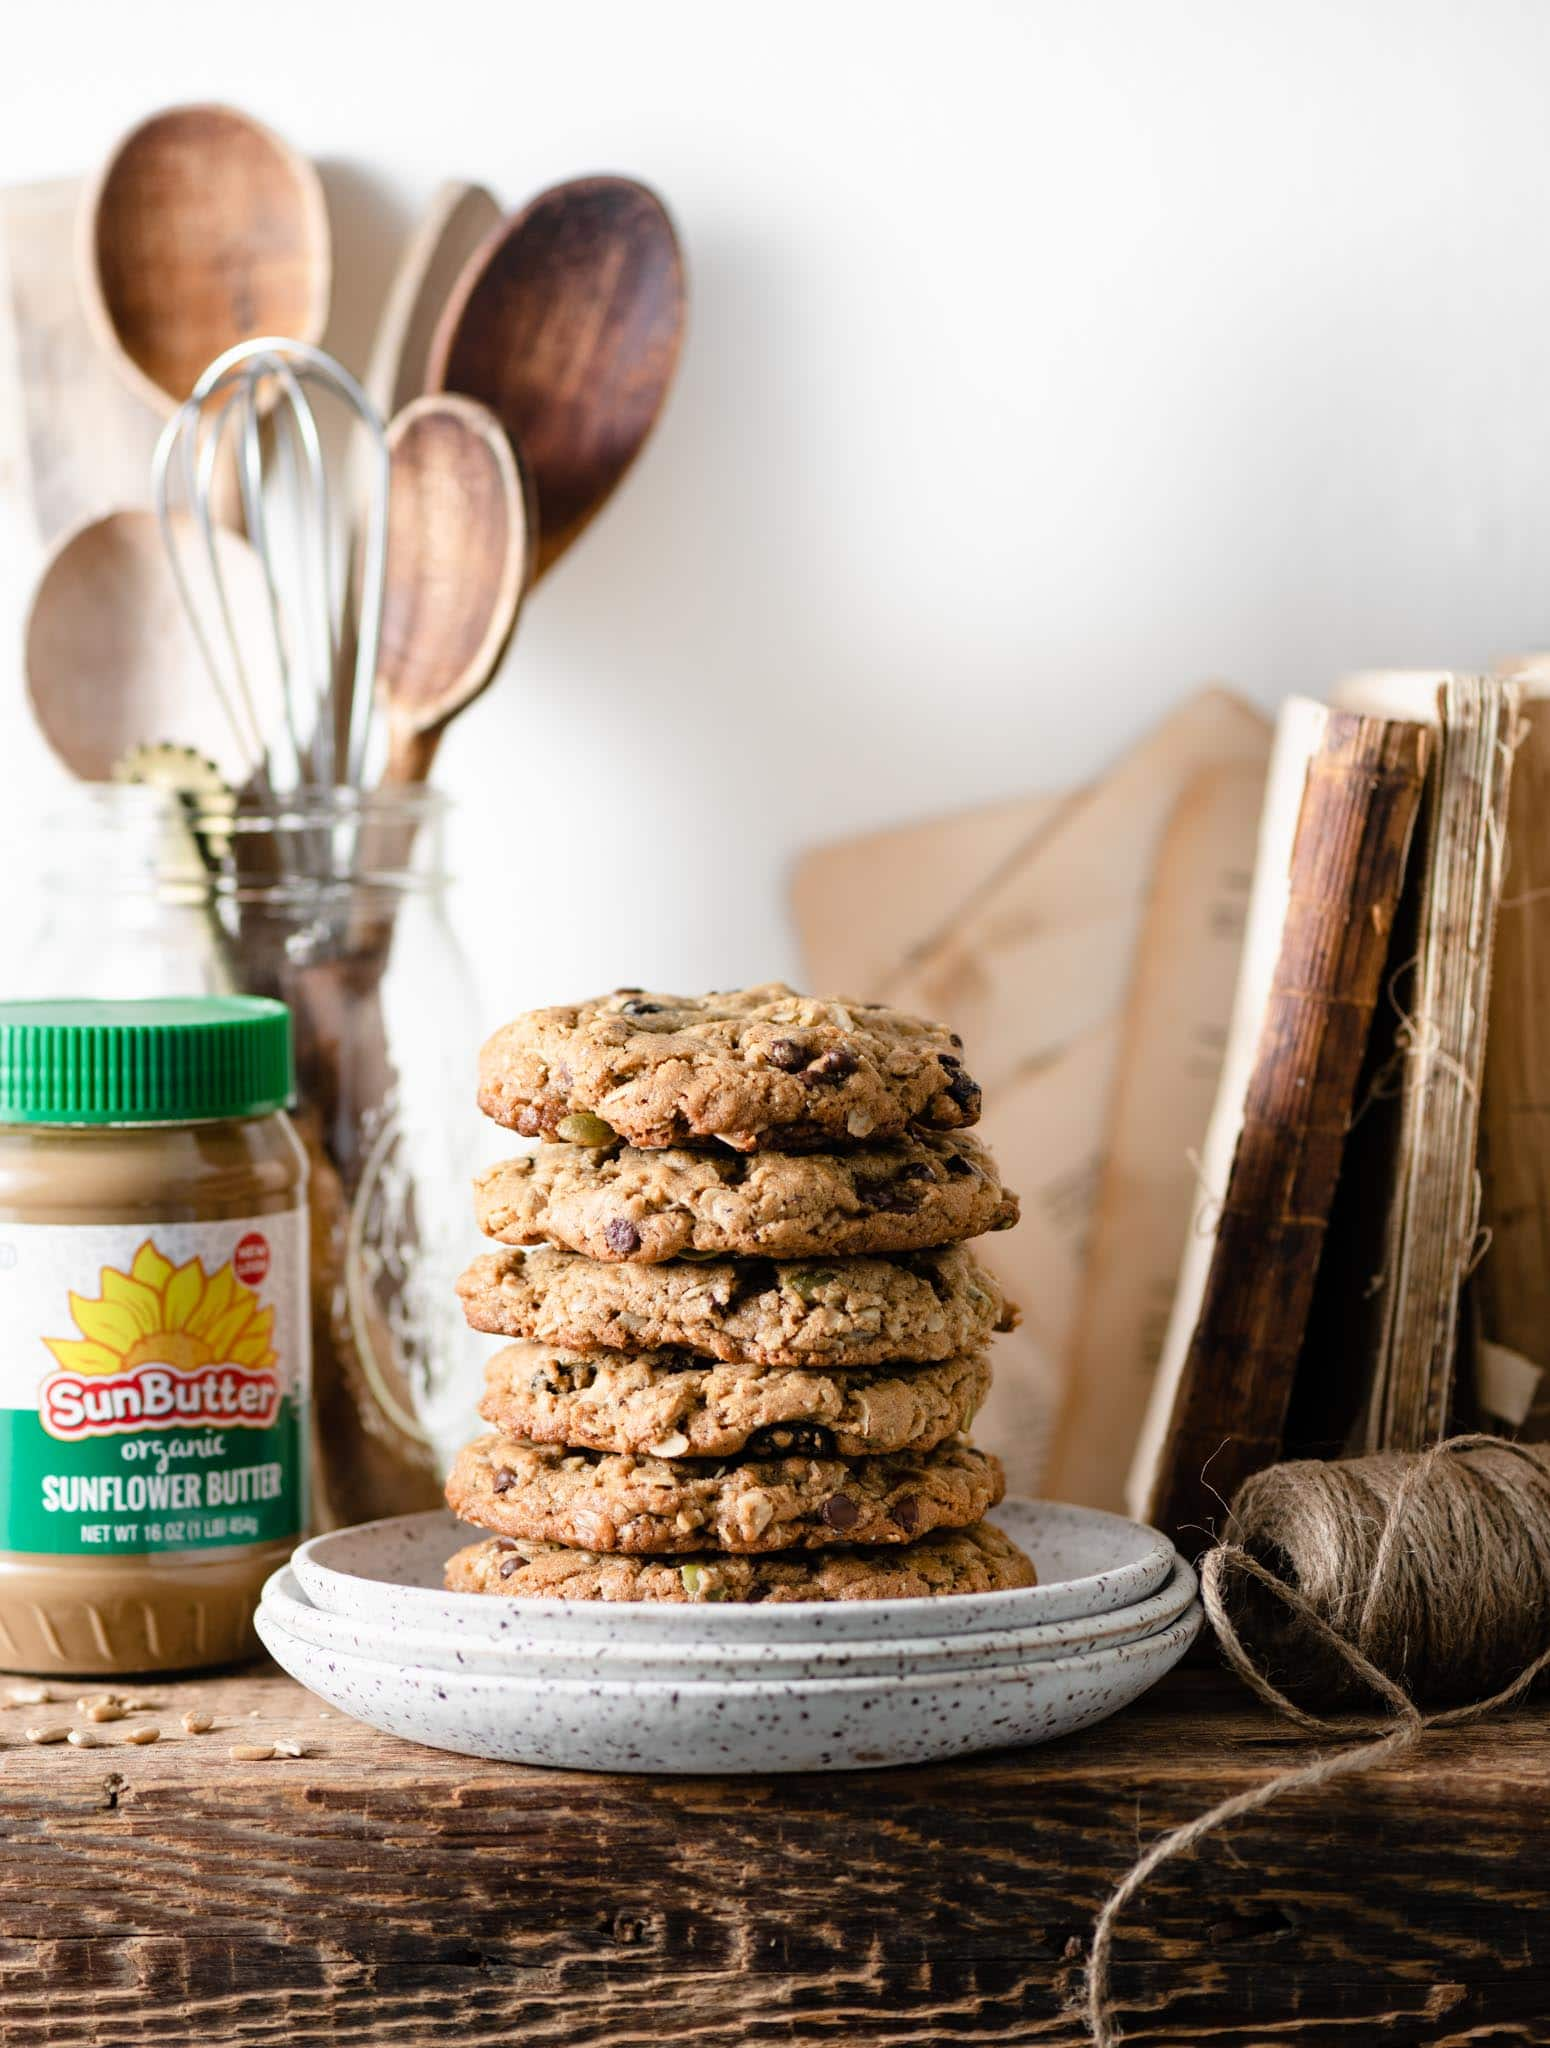 Sunflower butter with oatmeal cookies.